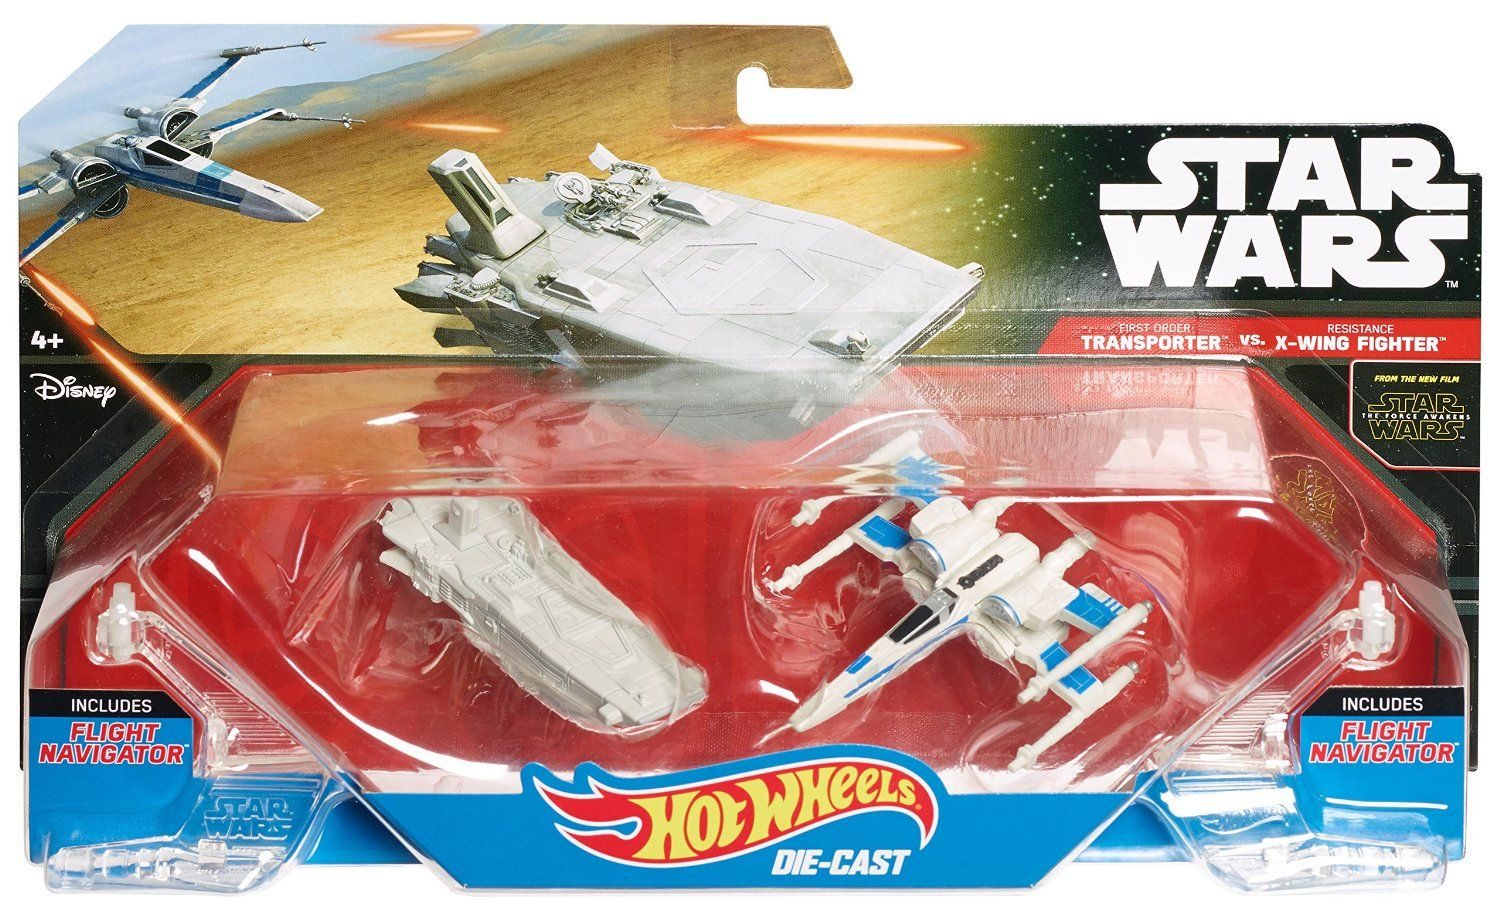 HOT WHEELS DIE CAST STAR WARS THE FORCE AWAKENS X-WING FIGHTER